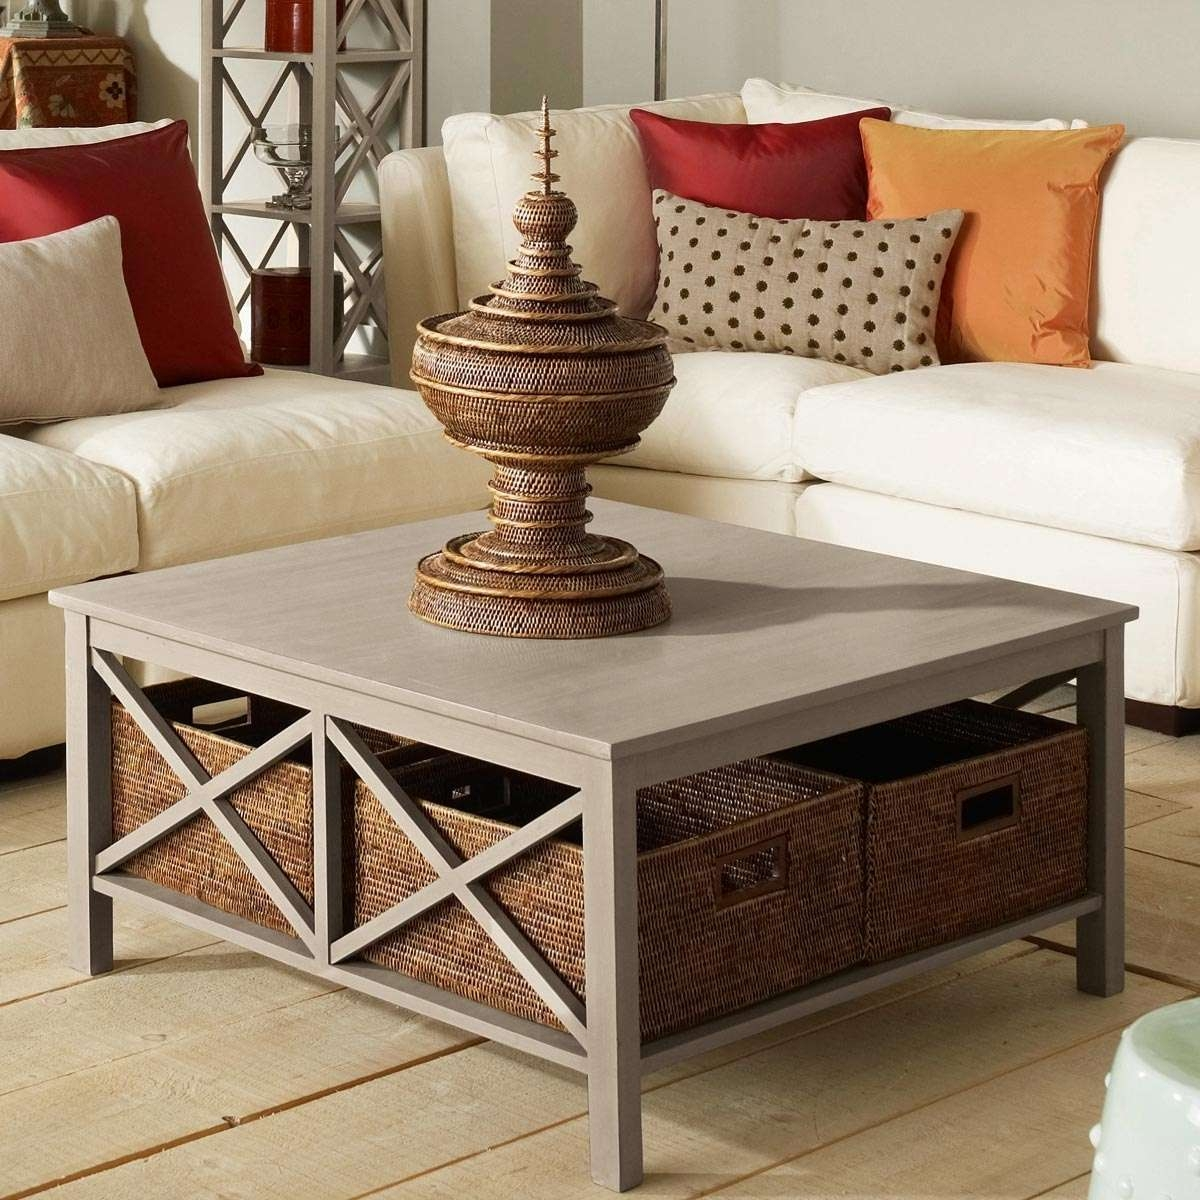 Most Popular Square Coffee Tables In Square Coffee Table With Storage Coffee Tables Inside Coffee Table (View 16 of 20)